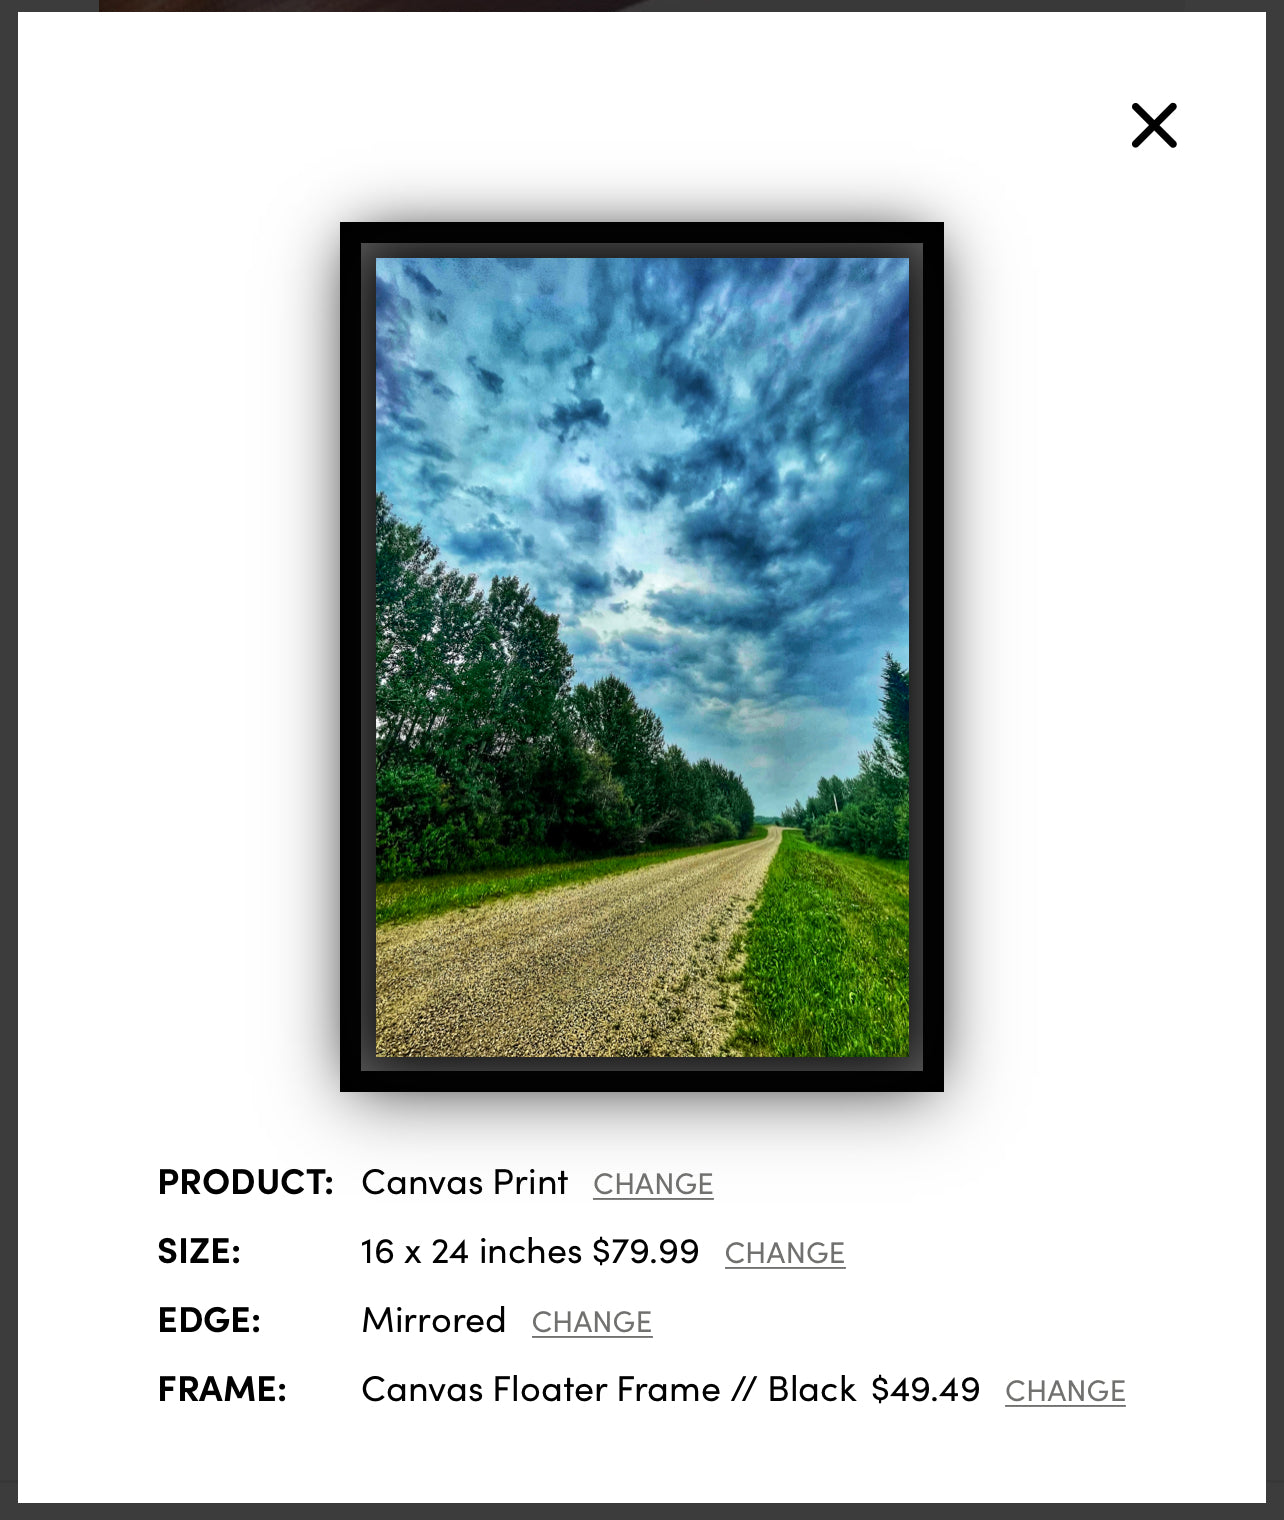 Guide to Printing a Phone Picture on Canvas - Step 6